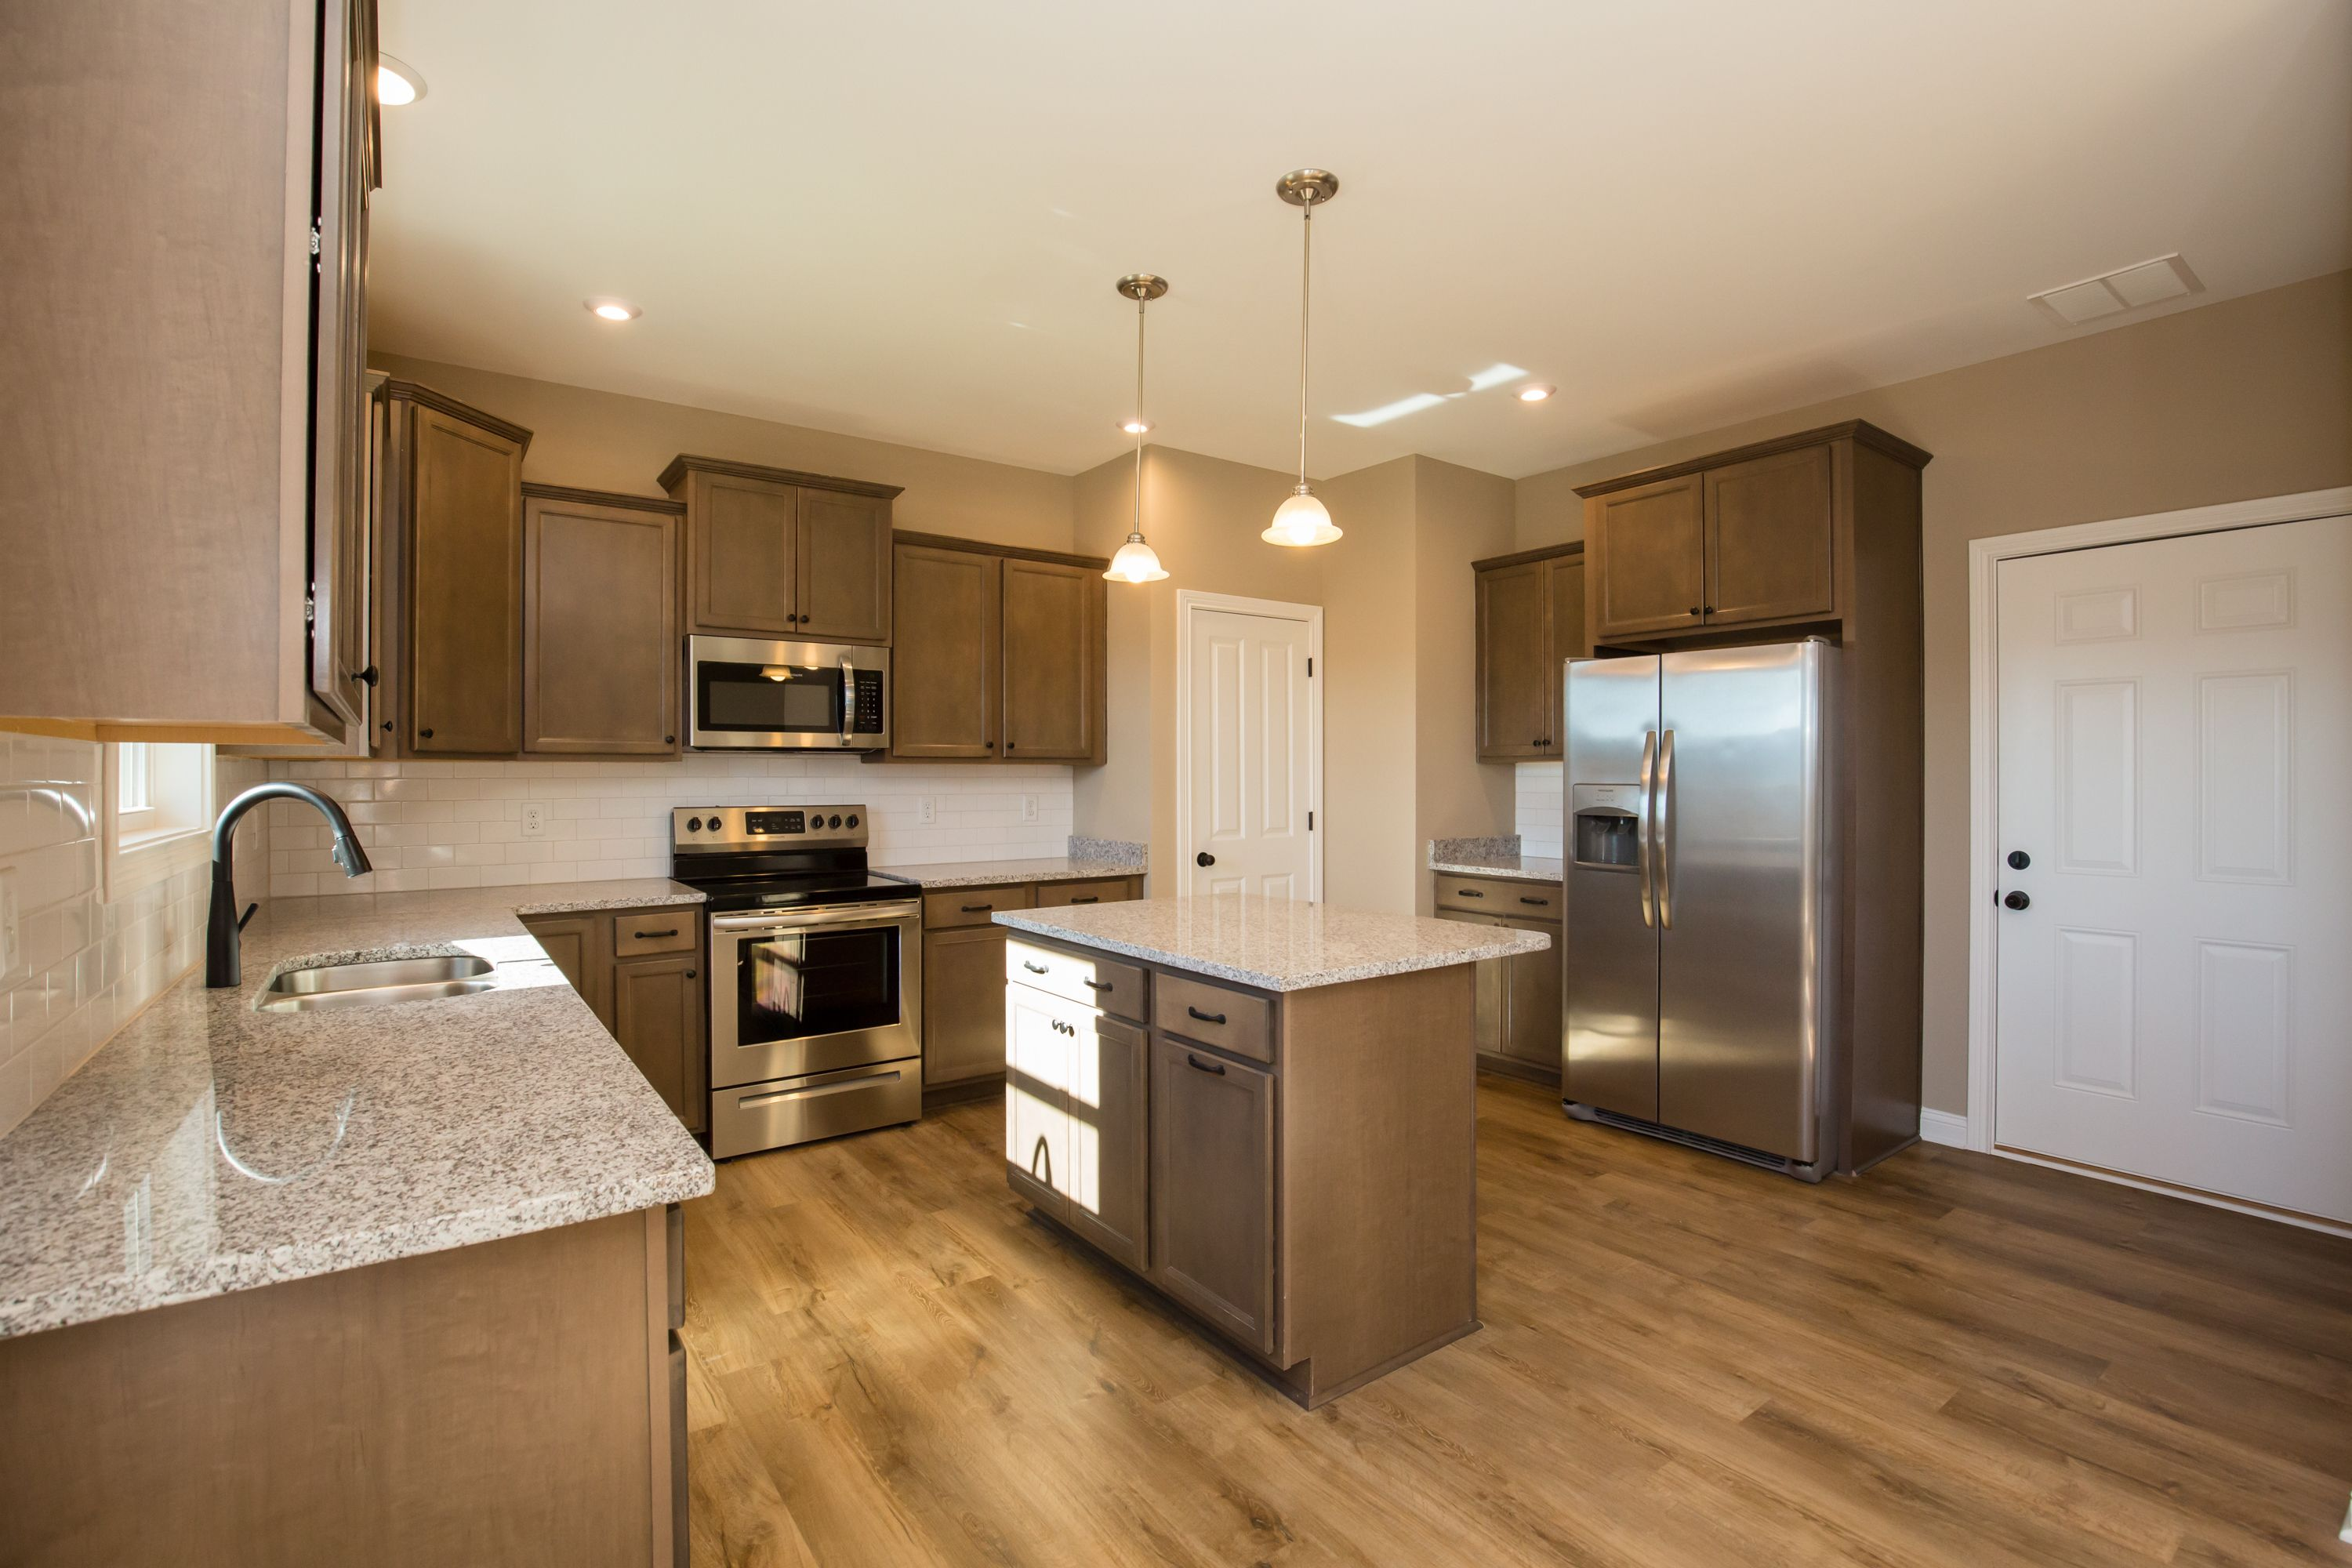 Kitchen featured in The Nancy By James Monroe Homes in Lexington, KY